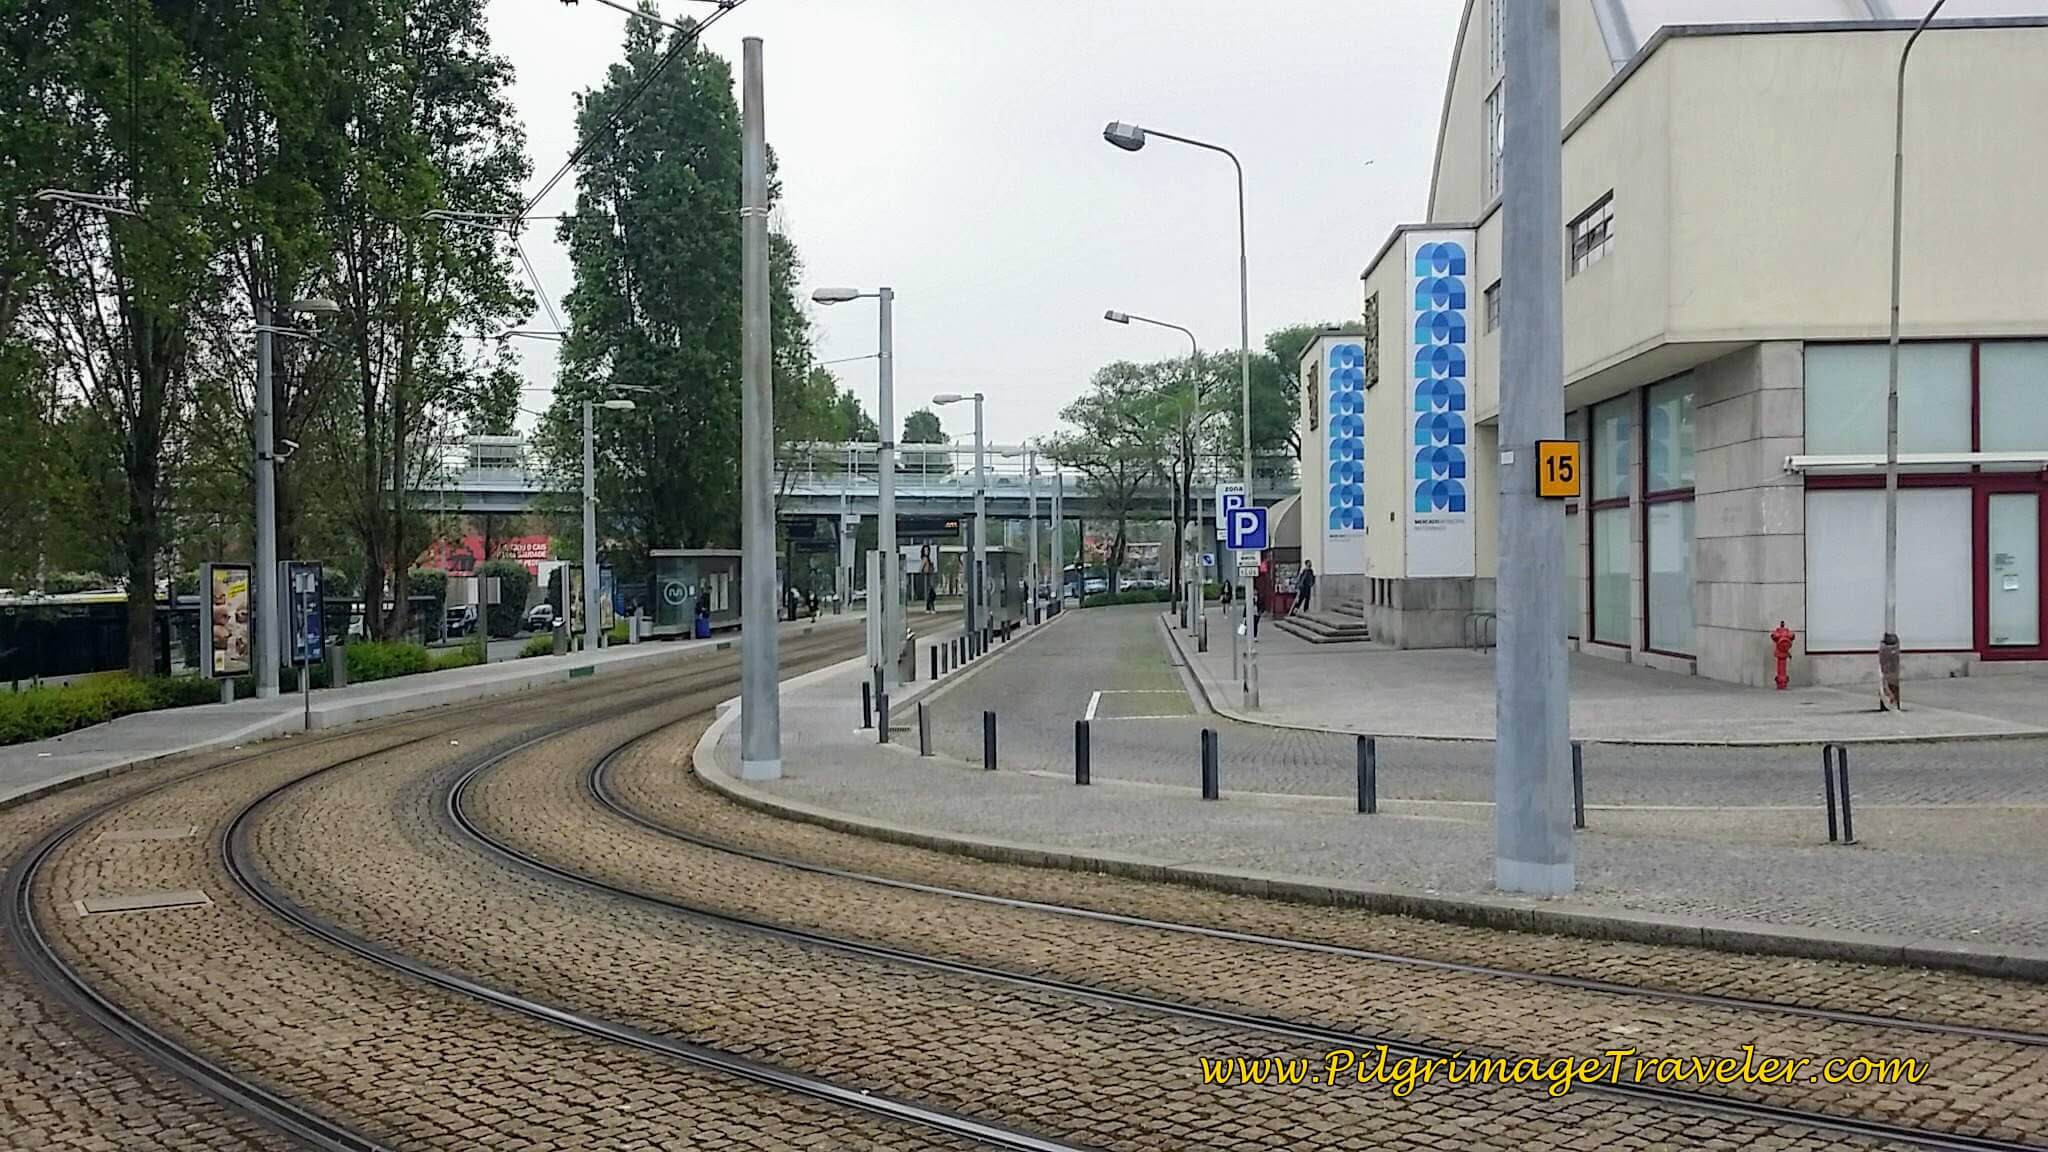 Matosinhos Metro Station and Tracks on day fifteen of the Camino Portugués on the Senda Litoral